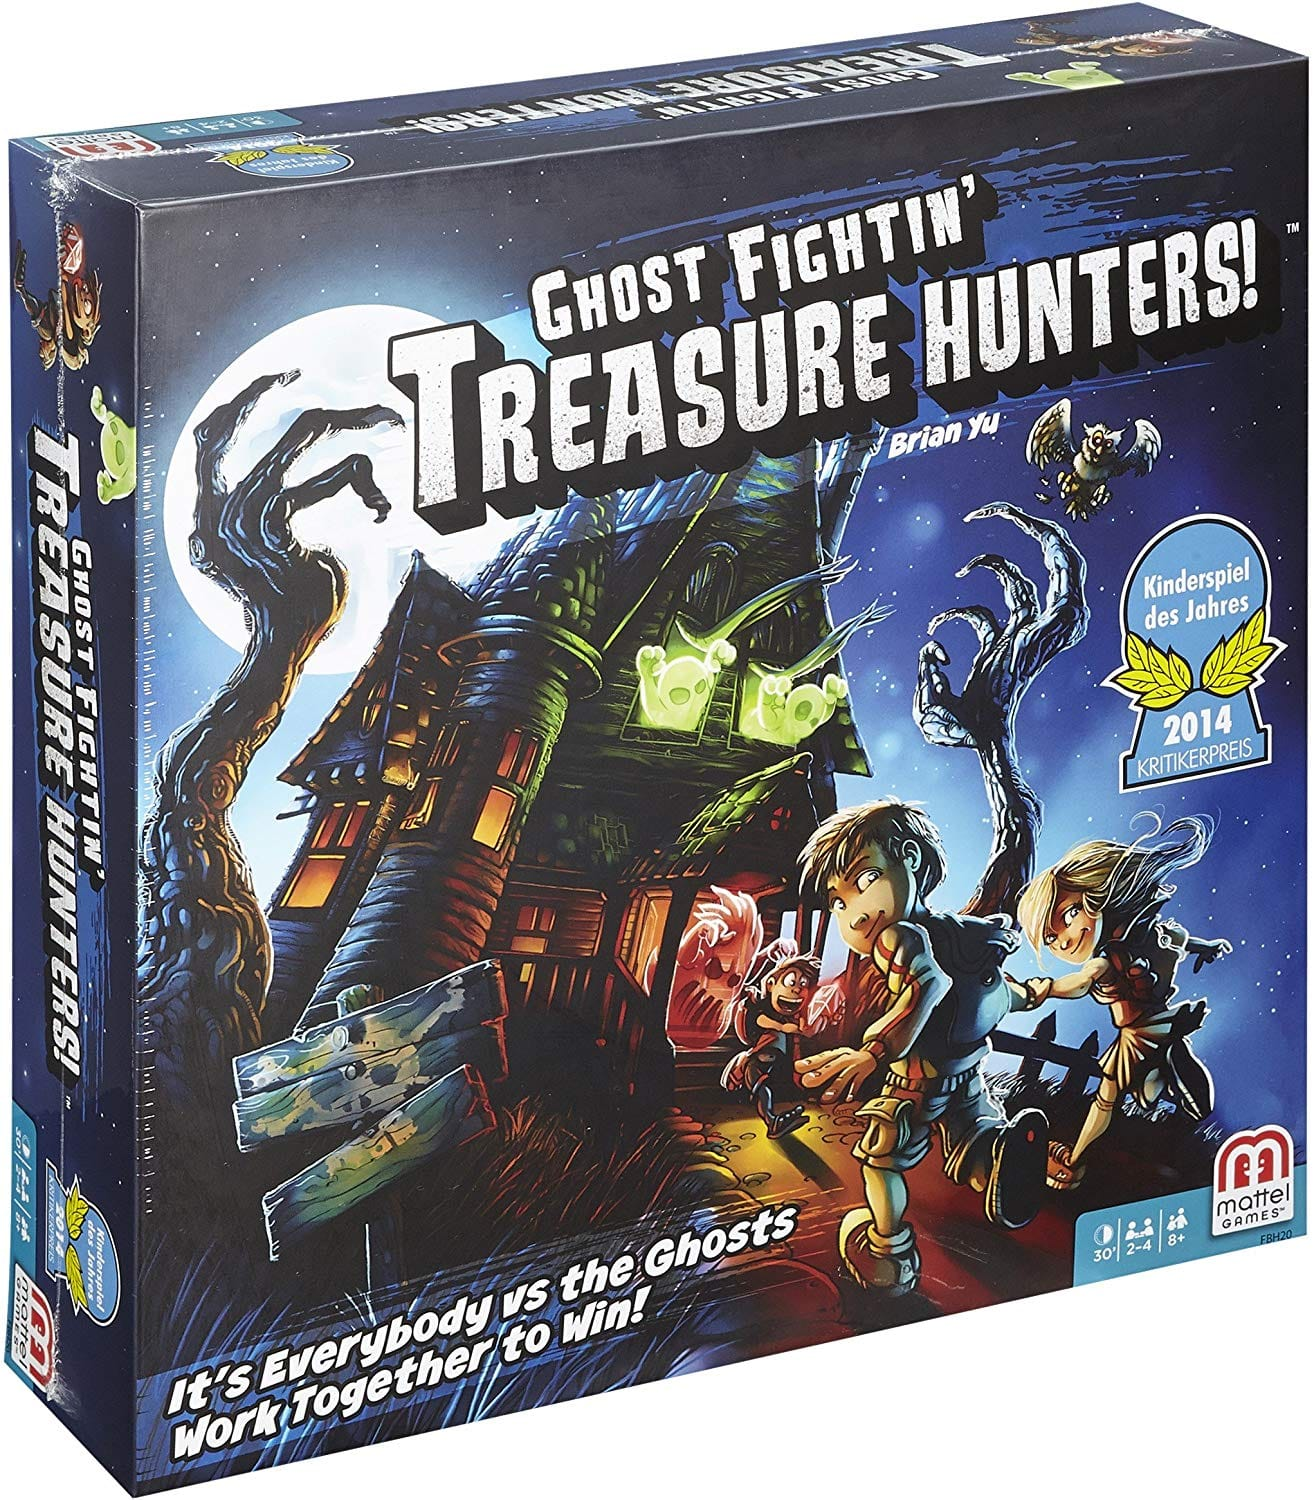 Ghost Fightin' Treasure Hunters Board Game $21.99